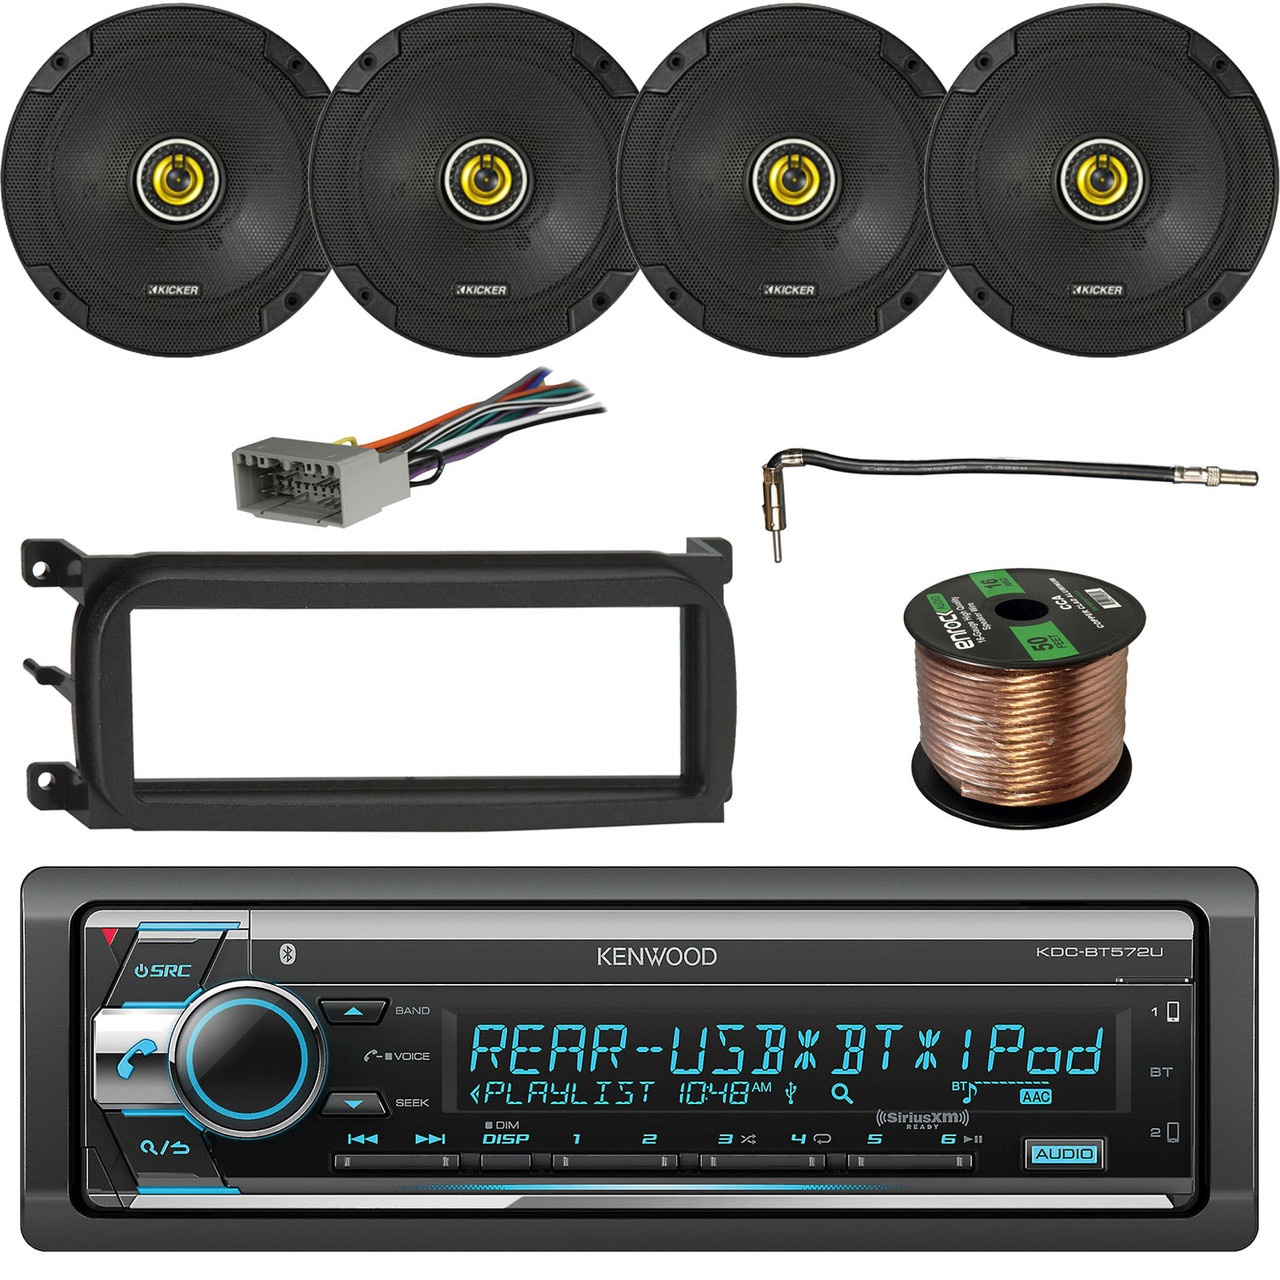 small resolution of kenwood stereo receiver bluetooth w kicker 600w speakers 2 pairs enrock single din dash kit for chry dodge jeep metra chrysler antenna adapter cable